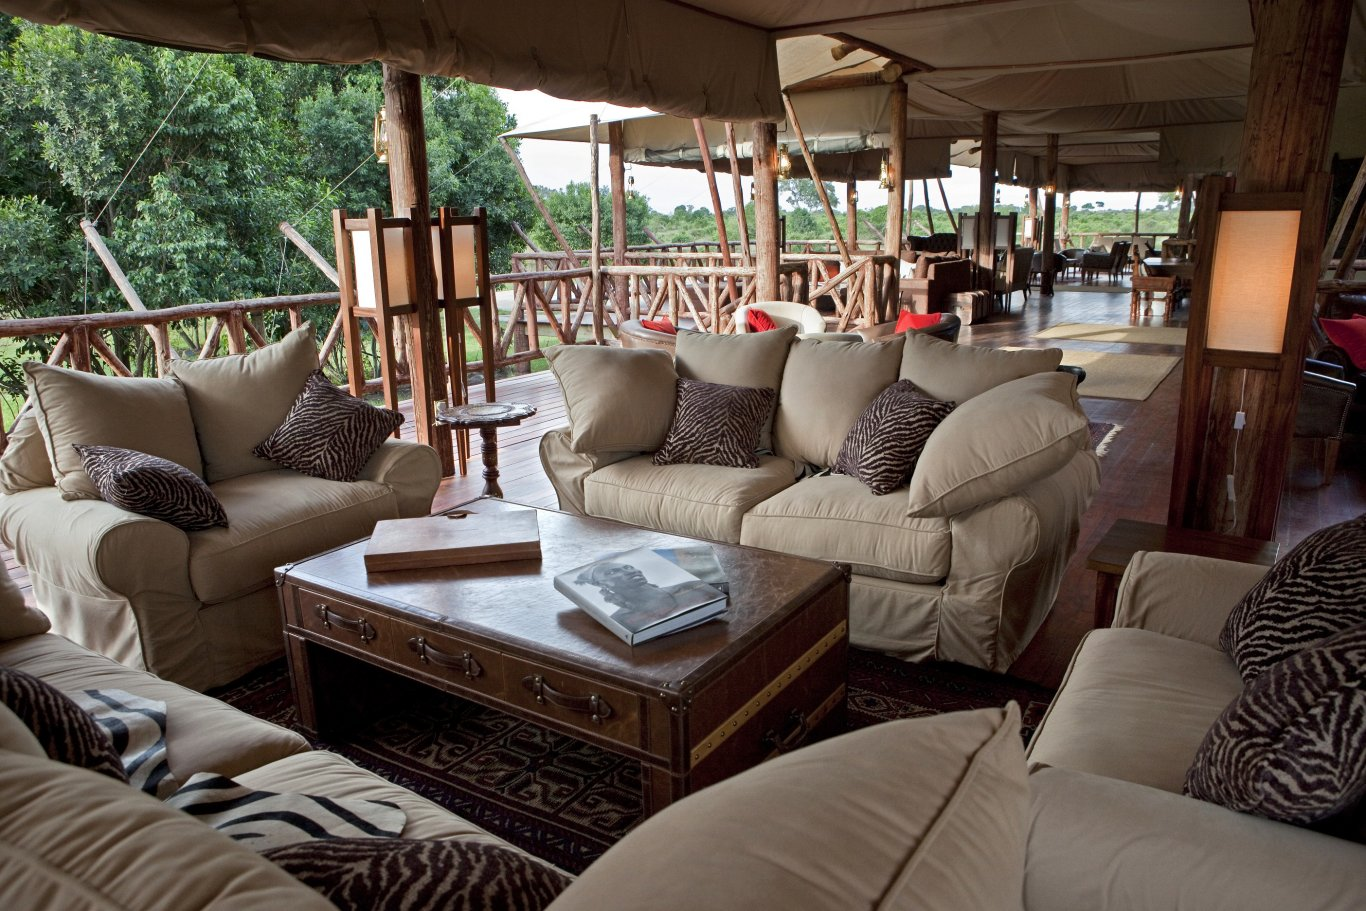 4 DAY MASAI MARA LUXURY TENTED CAMPS SAFARI